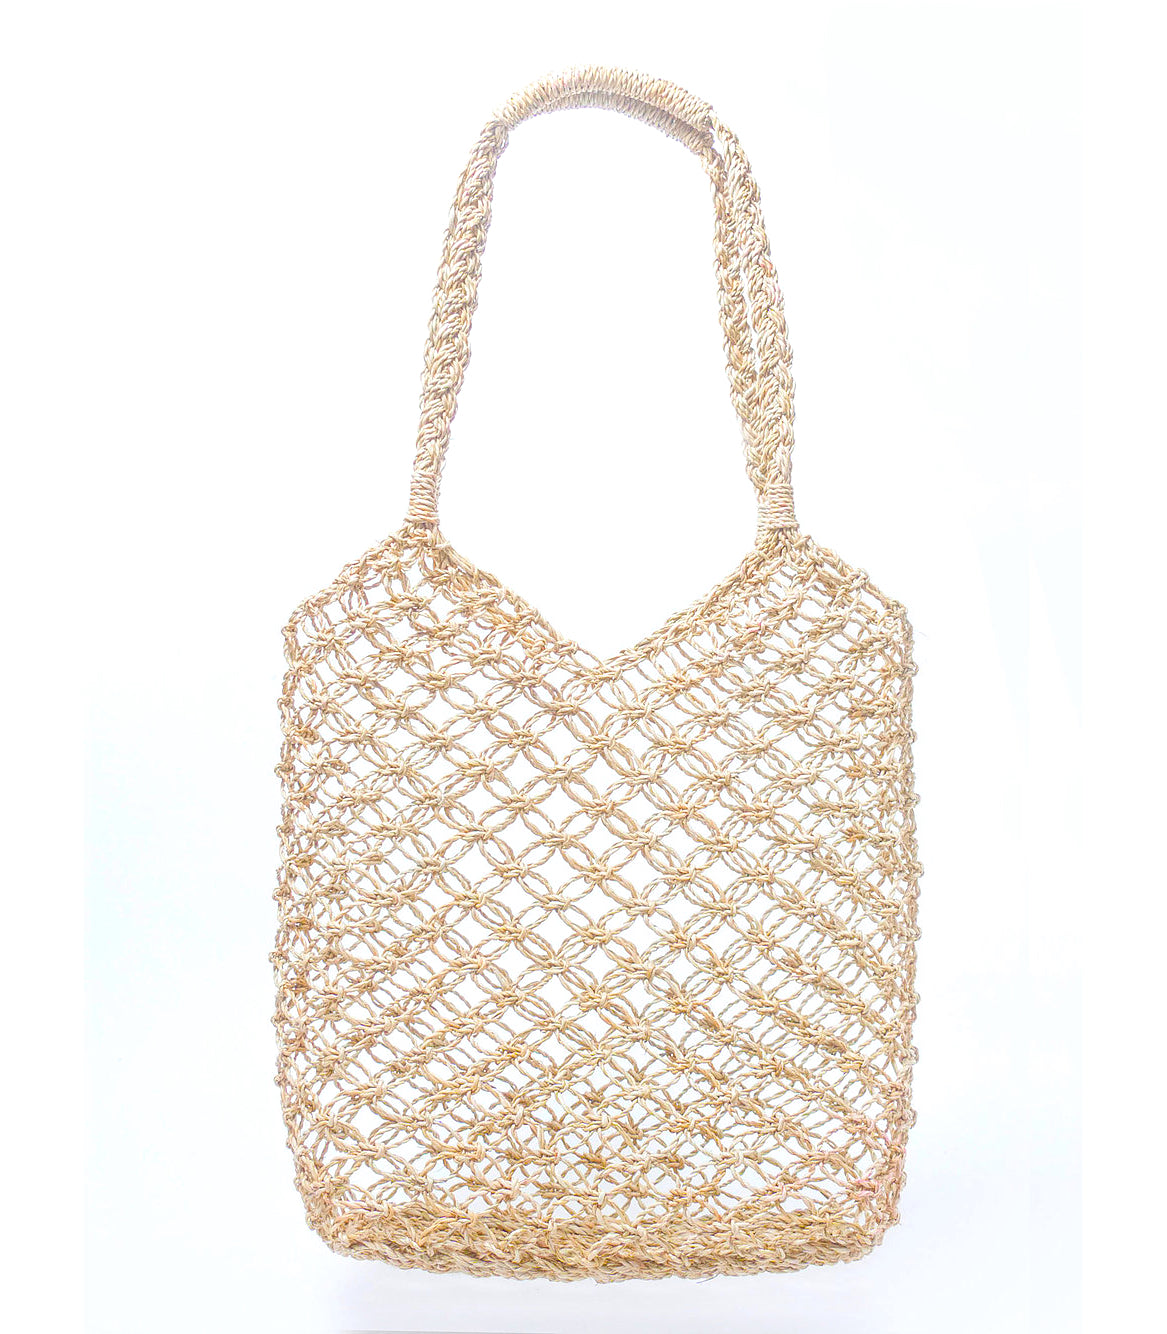 Tikog Net Tote from Habin